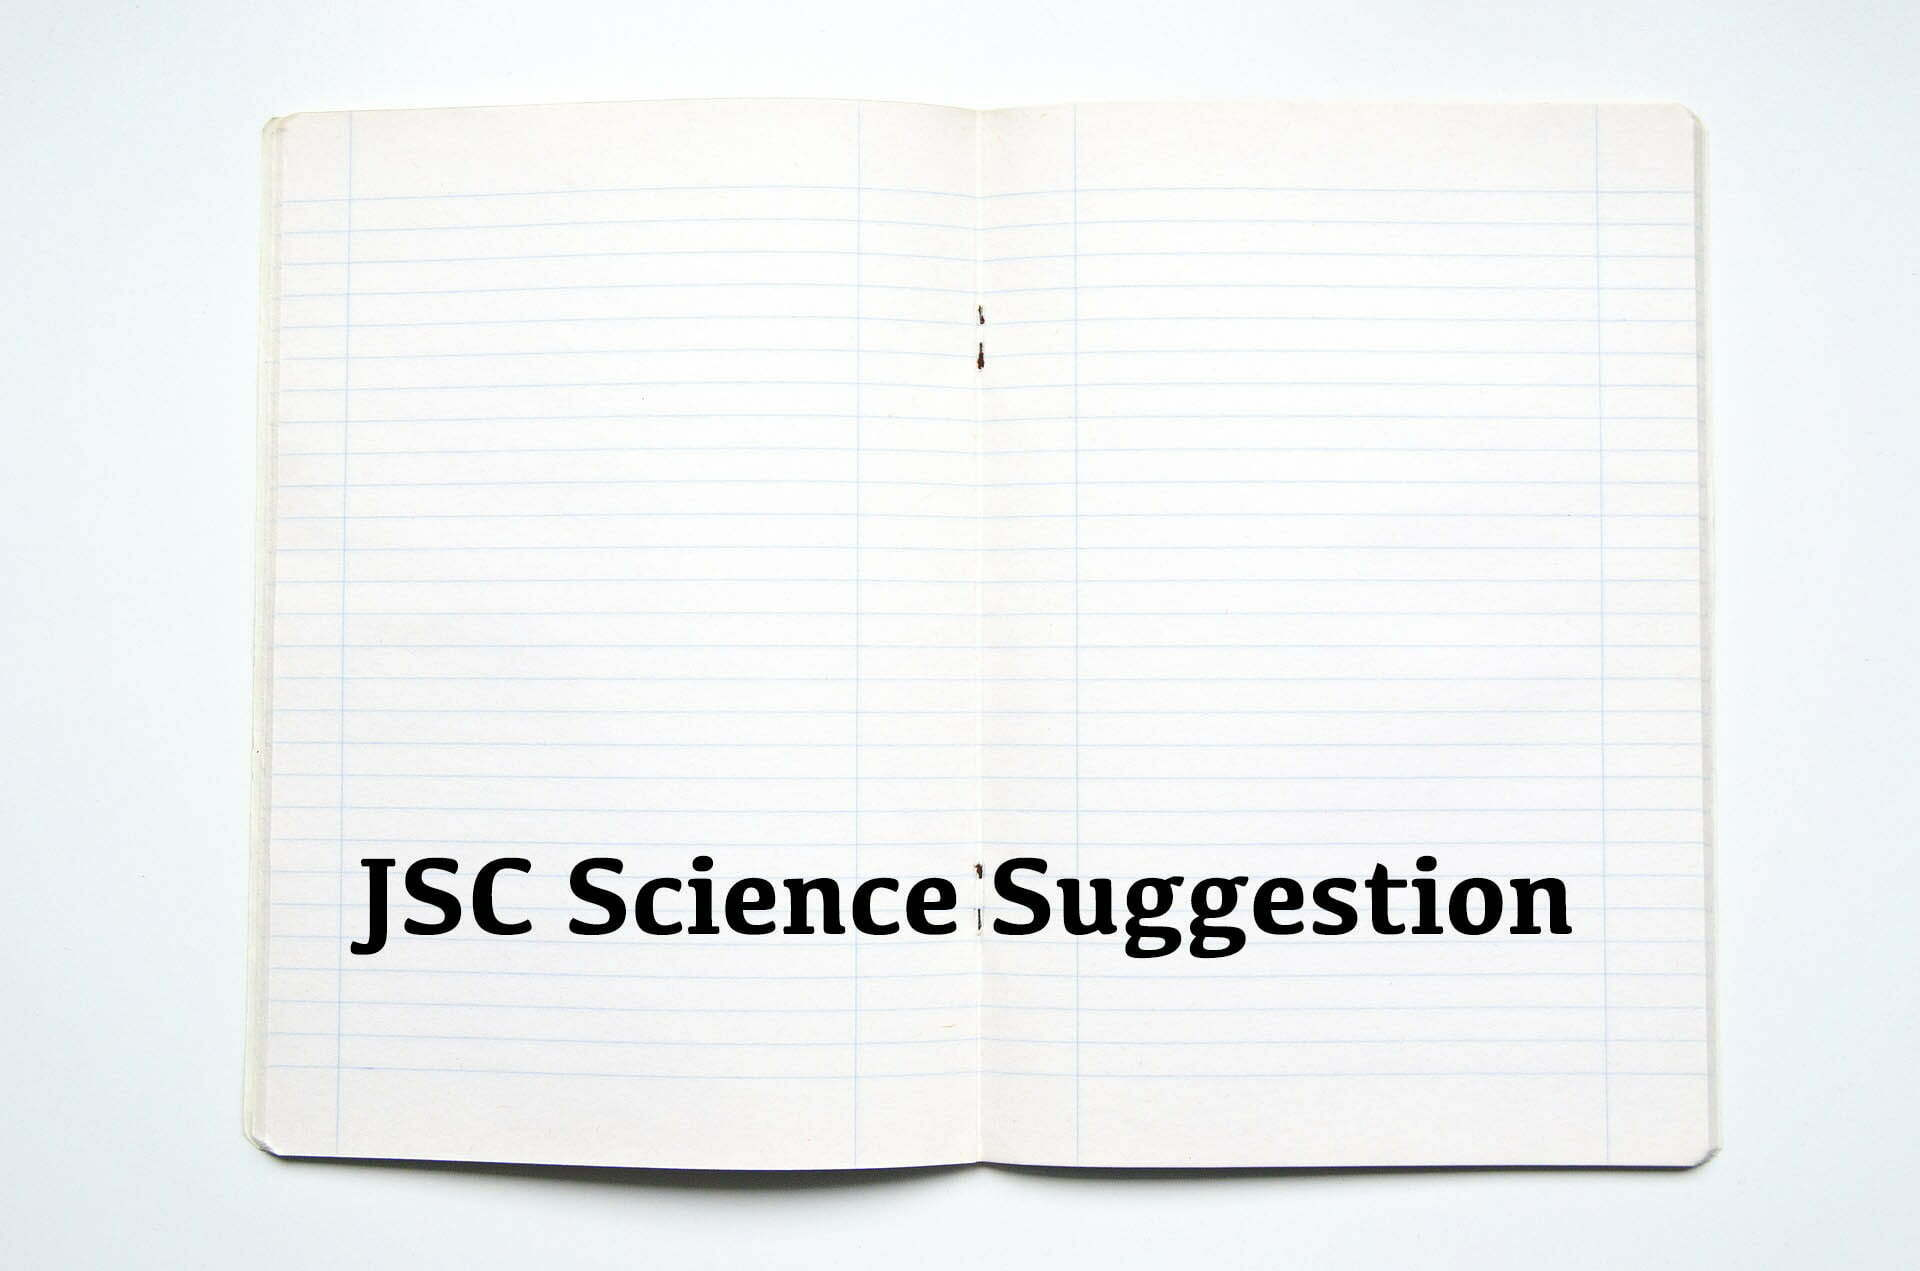 JSC Science Suggestion 2019